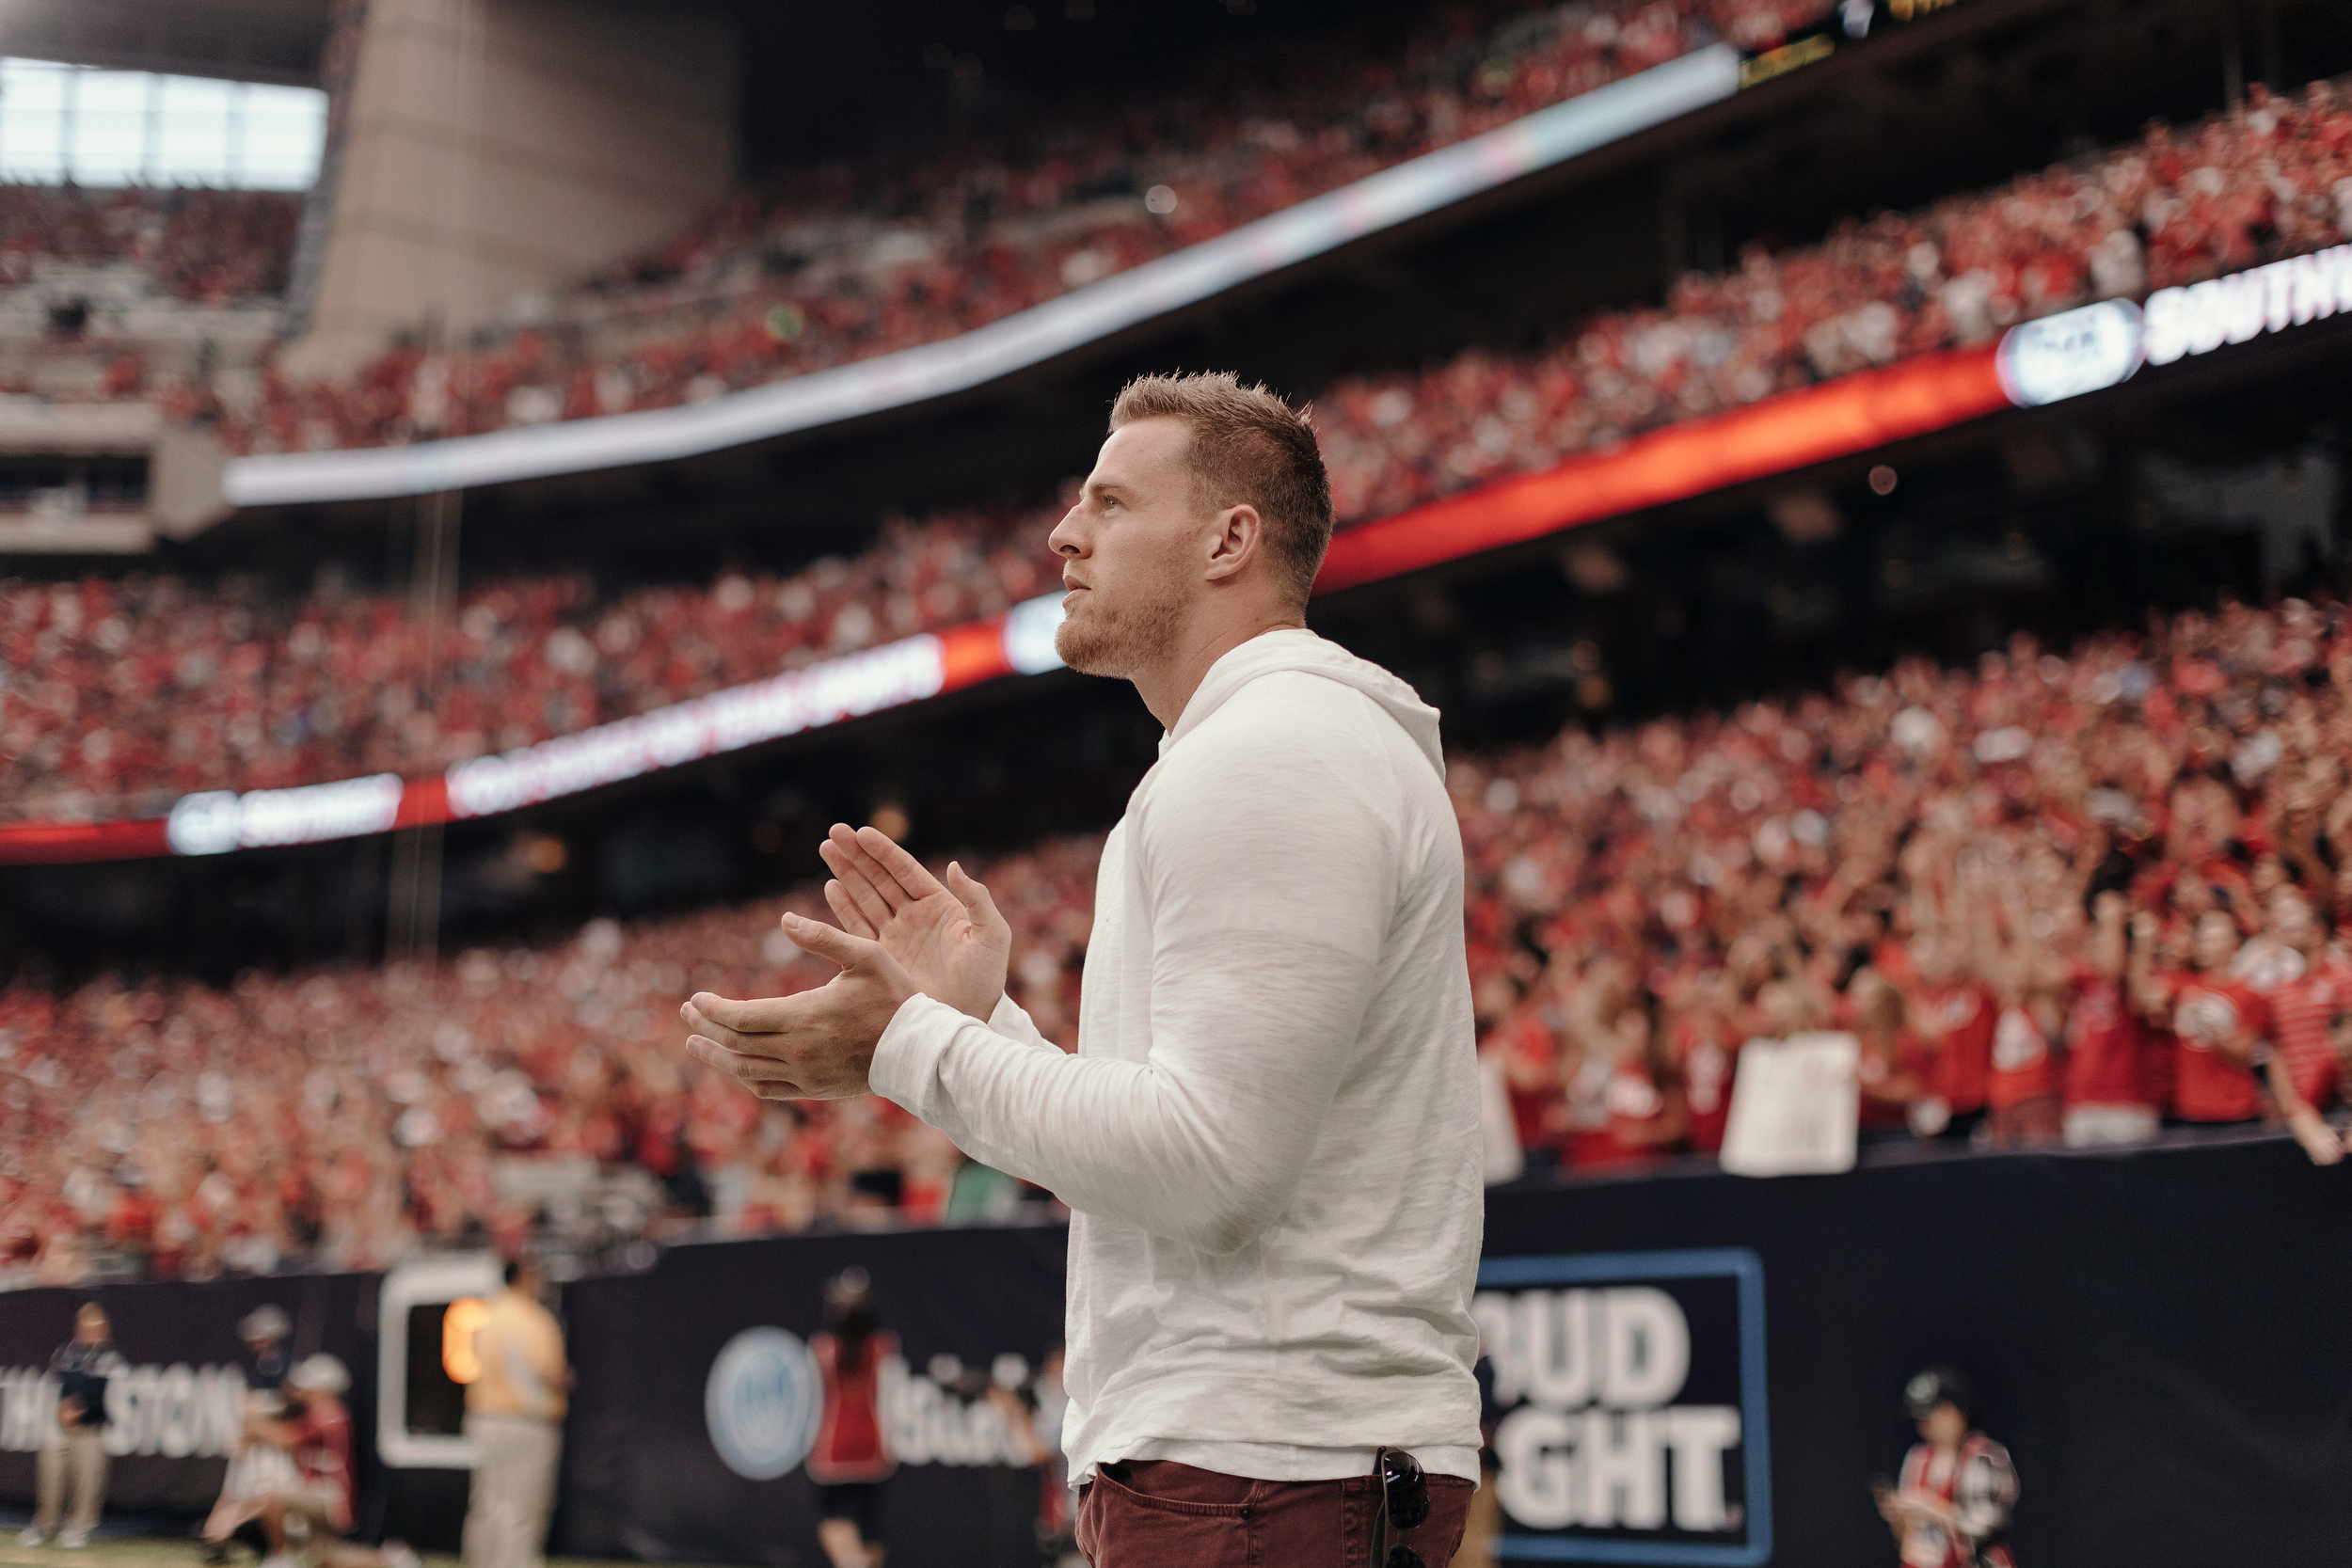 Houston Texan, JJ Watt, watches the game from the sidelines. Todd Spoth for The New York Times.